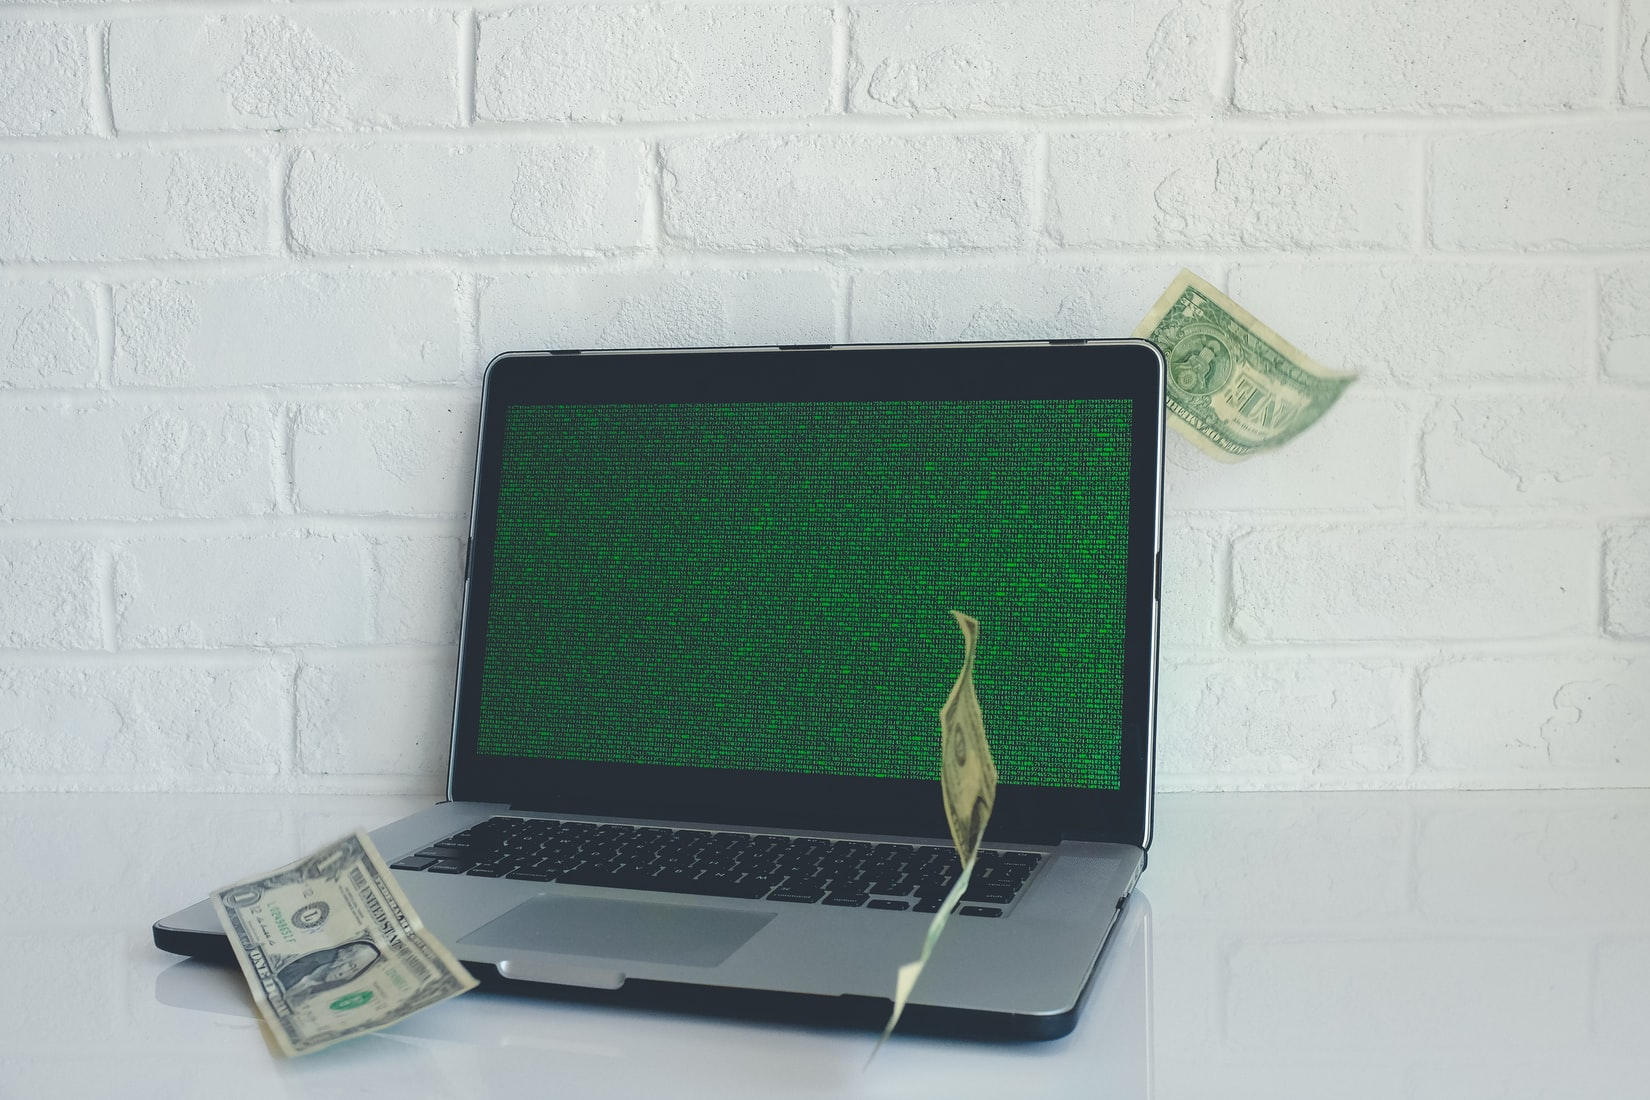 lap top with money coming out